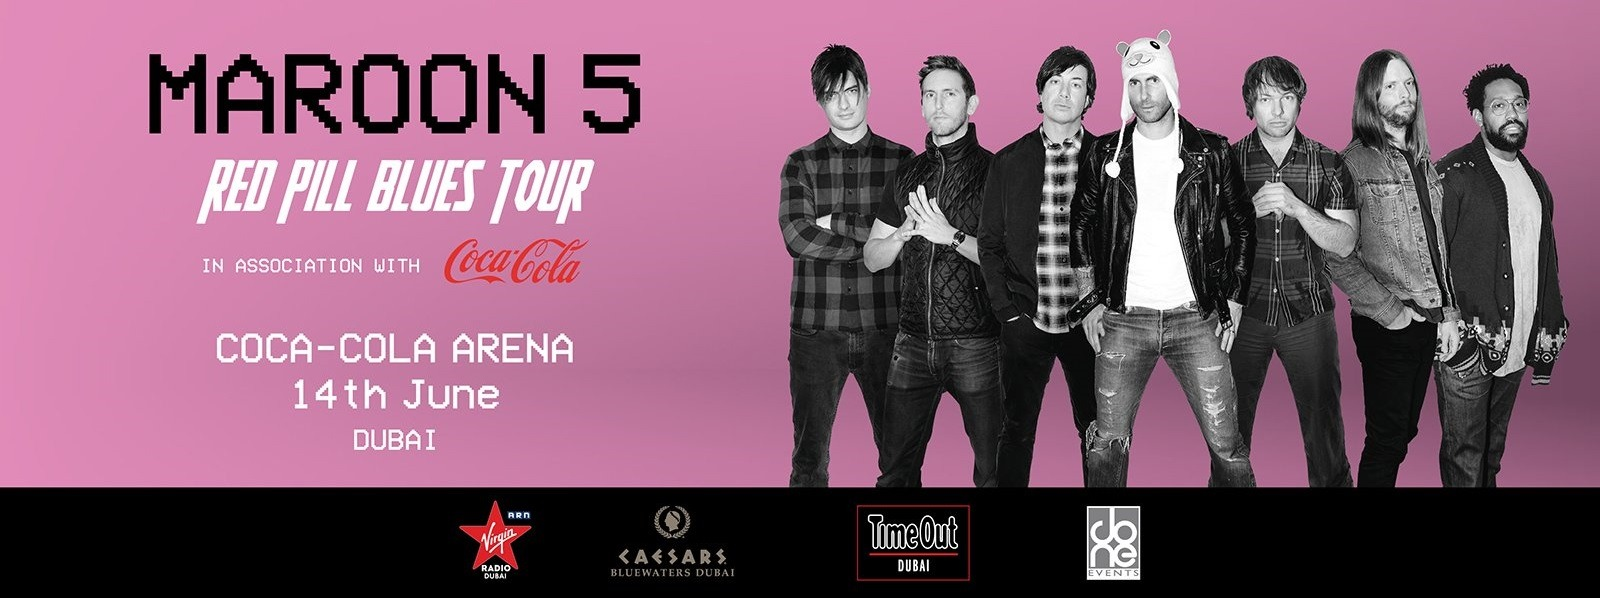 Maroon 5 Live at Coca-Cola Arena - Coming Soon in UAE